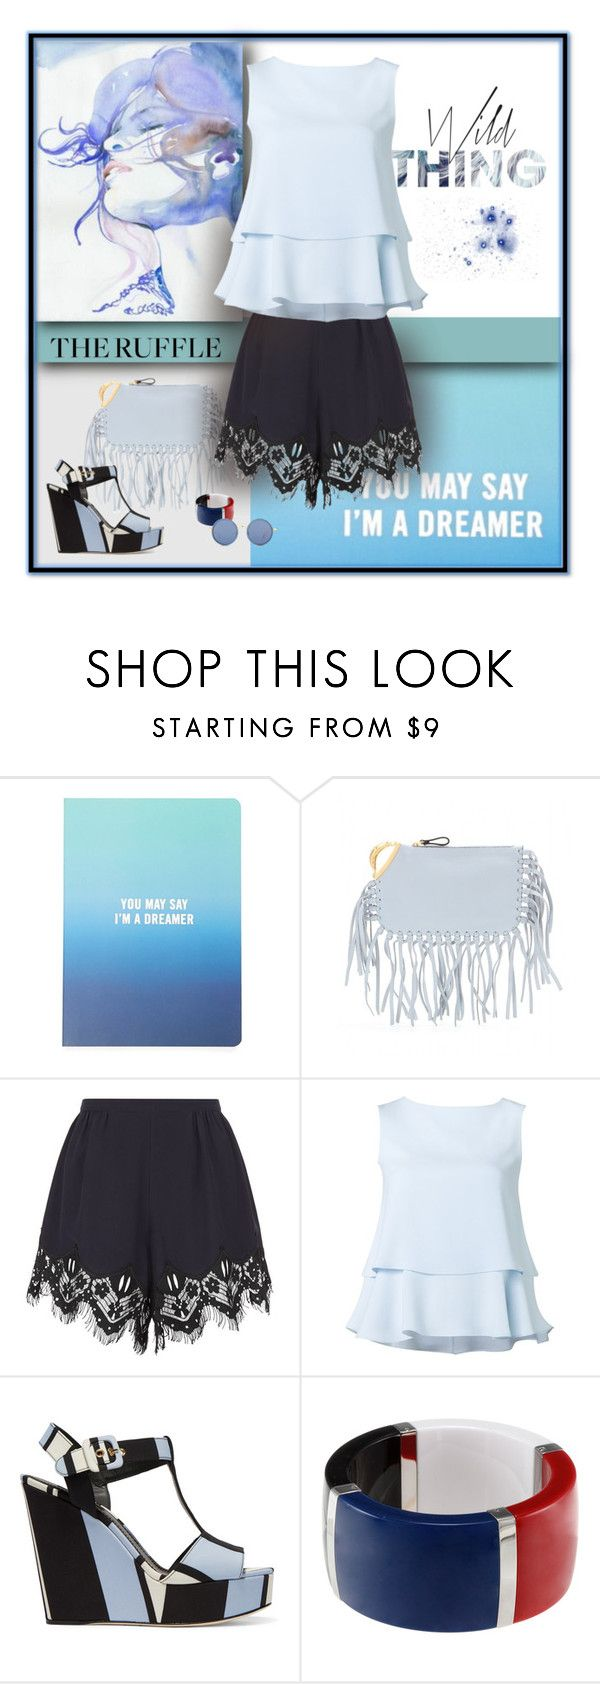 """Bluesy Lady"" by michelletheaflack ❤ liked on Polyvore featuring Forever 21, Valentino, Chloé, Barneys New York, CO, Dolce&Gabbana, Linda Farrow, ruffles and polyvorecontests"